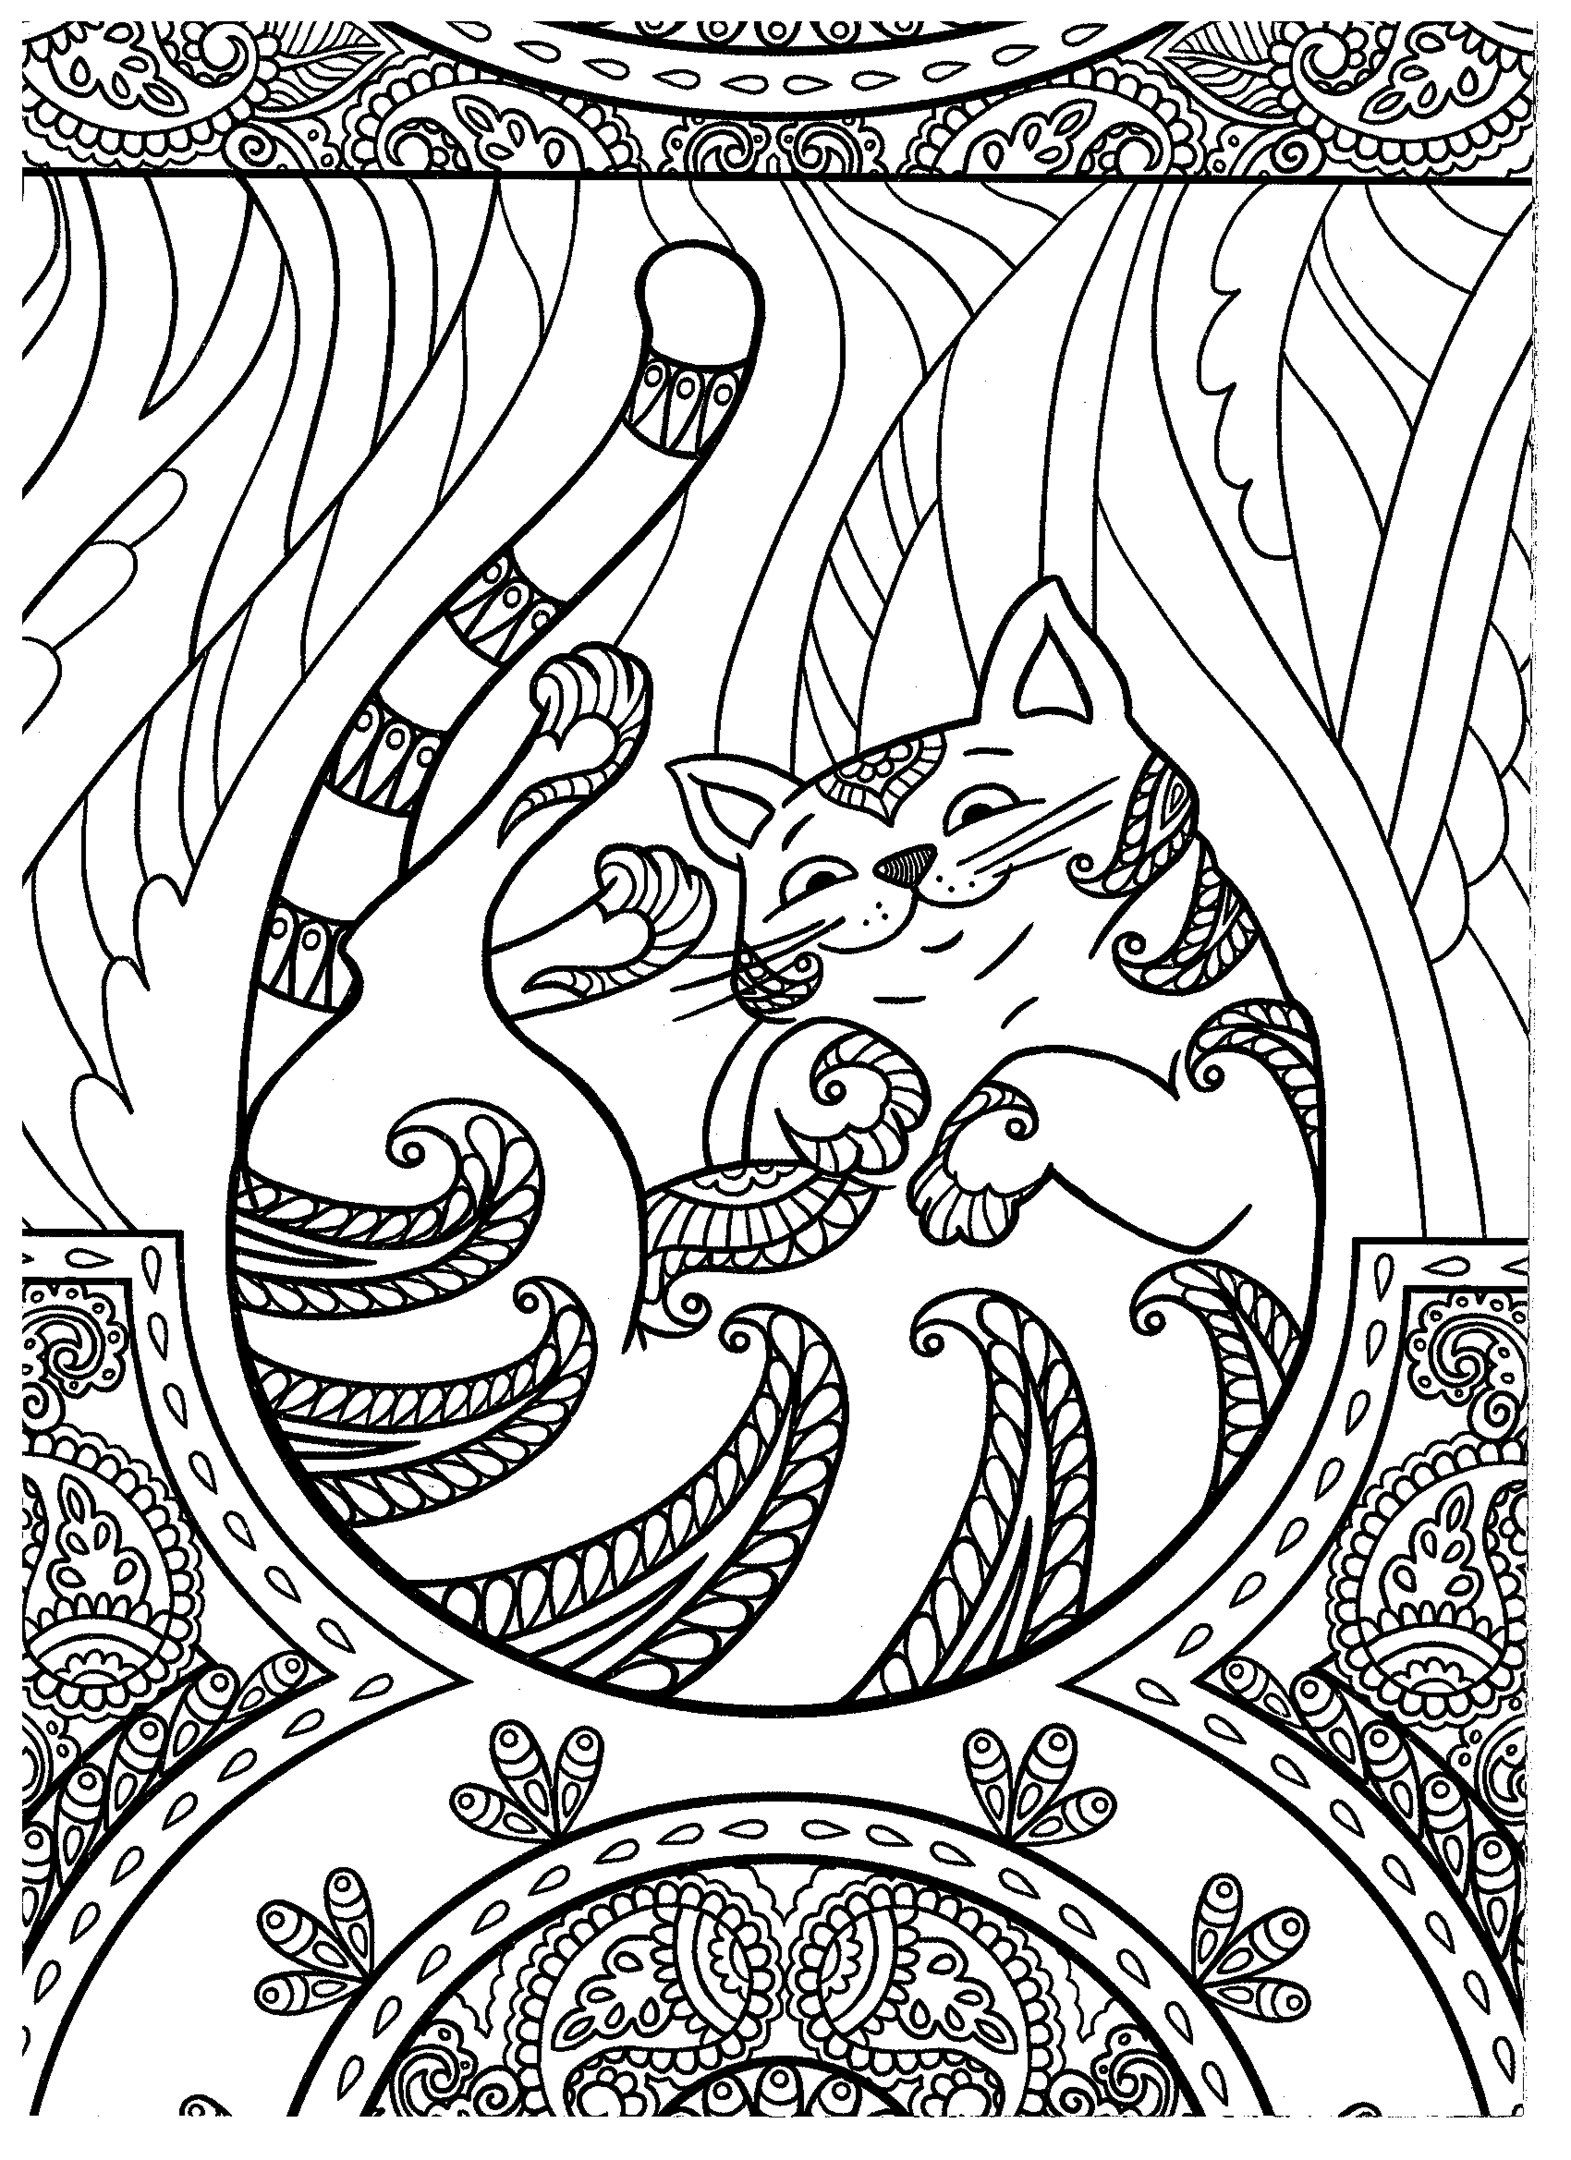 Cat coloring page Kids coloring